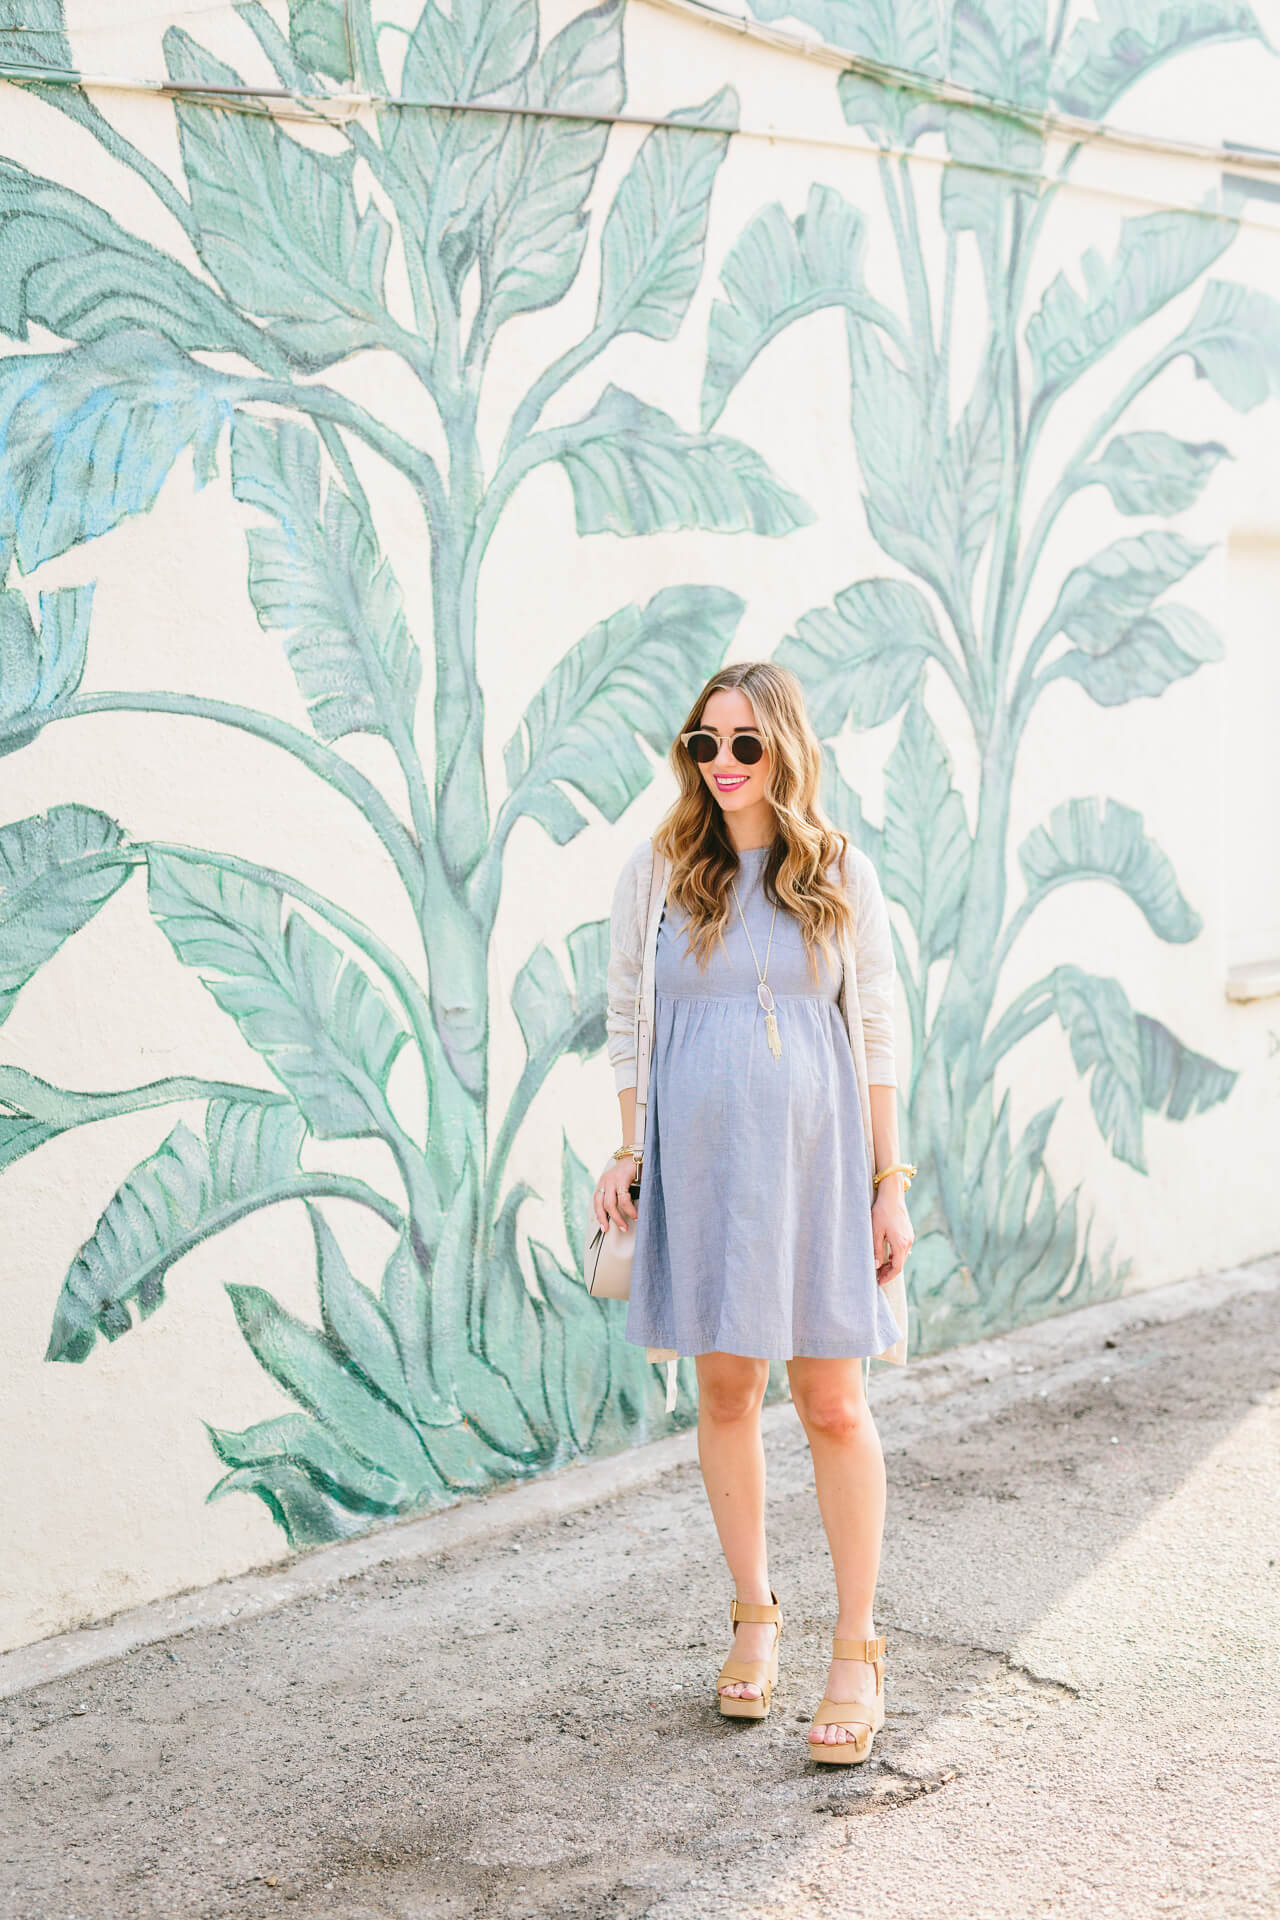 cute summer or fall outfit inspiration: chambray dress with wedges and cardigan